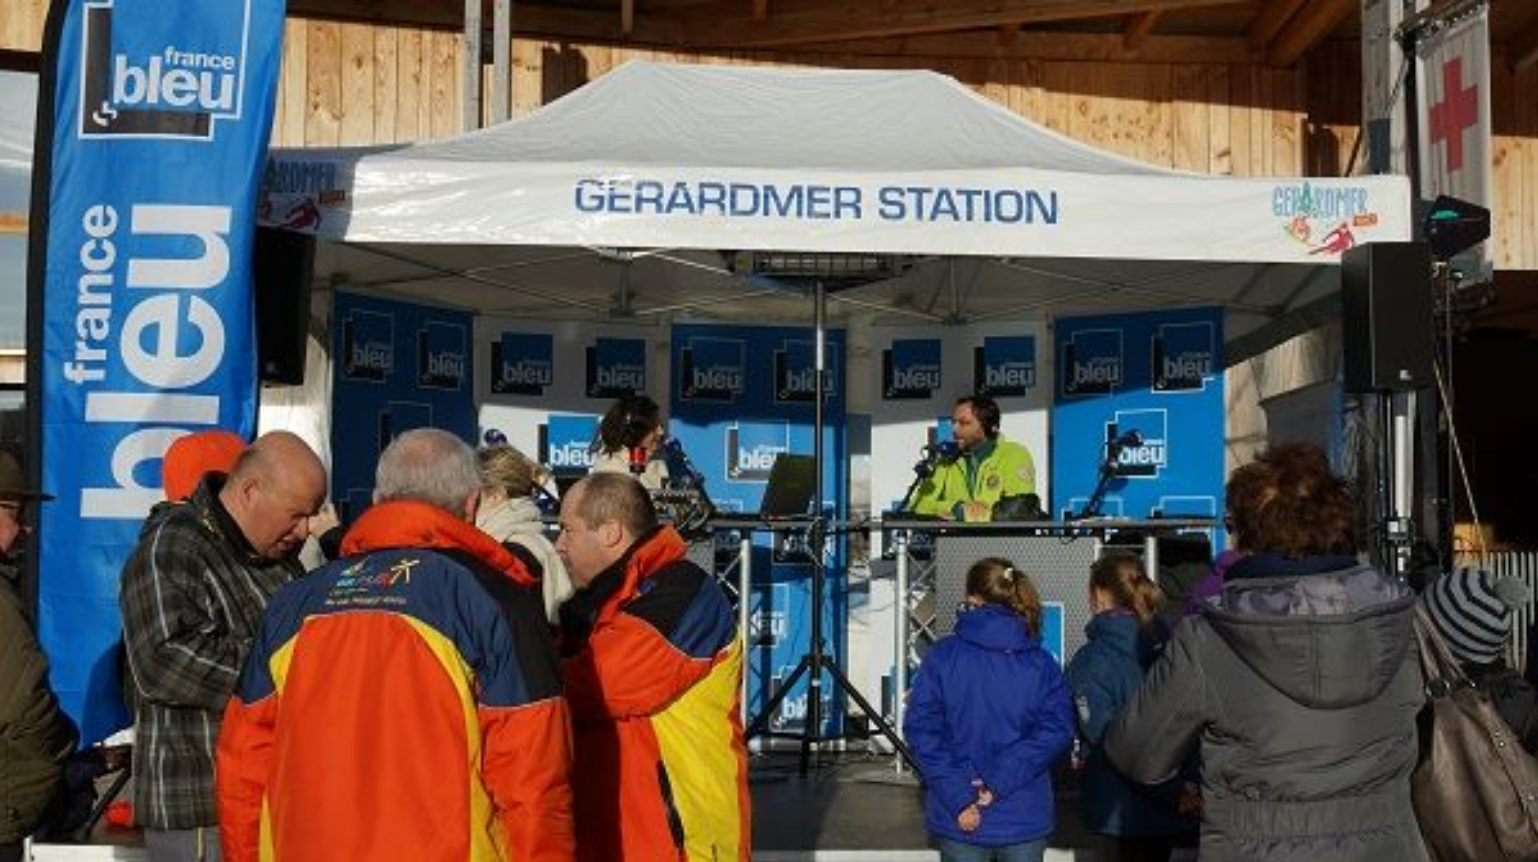 France Bleu en direct de Gérardmer © Radio France - Frédéric Bélot